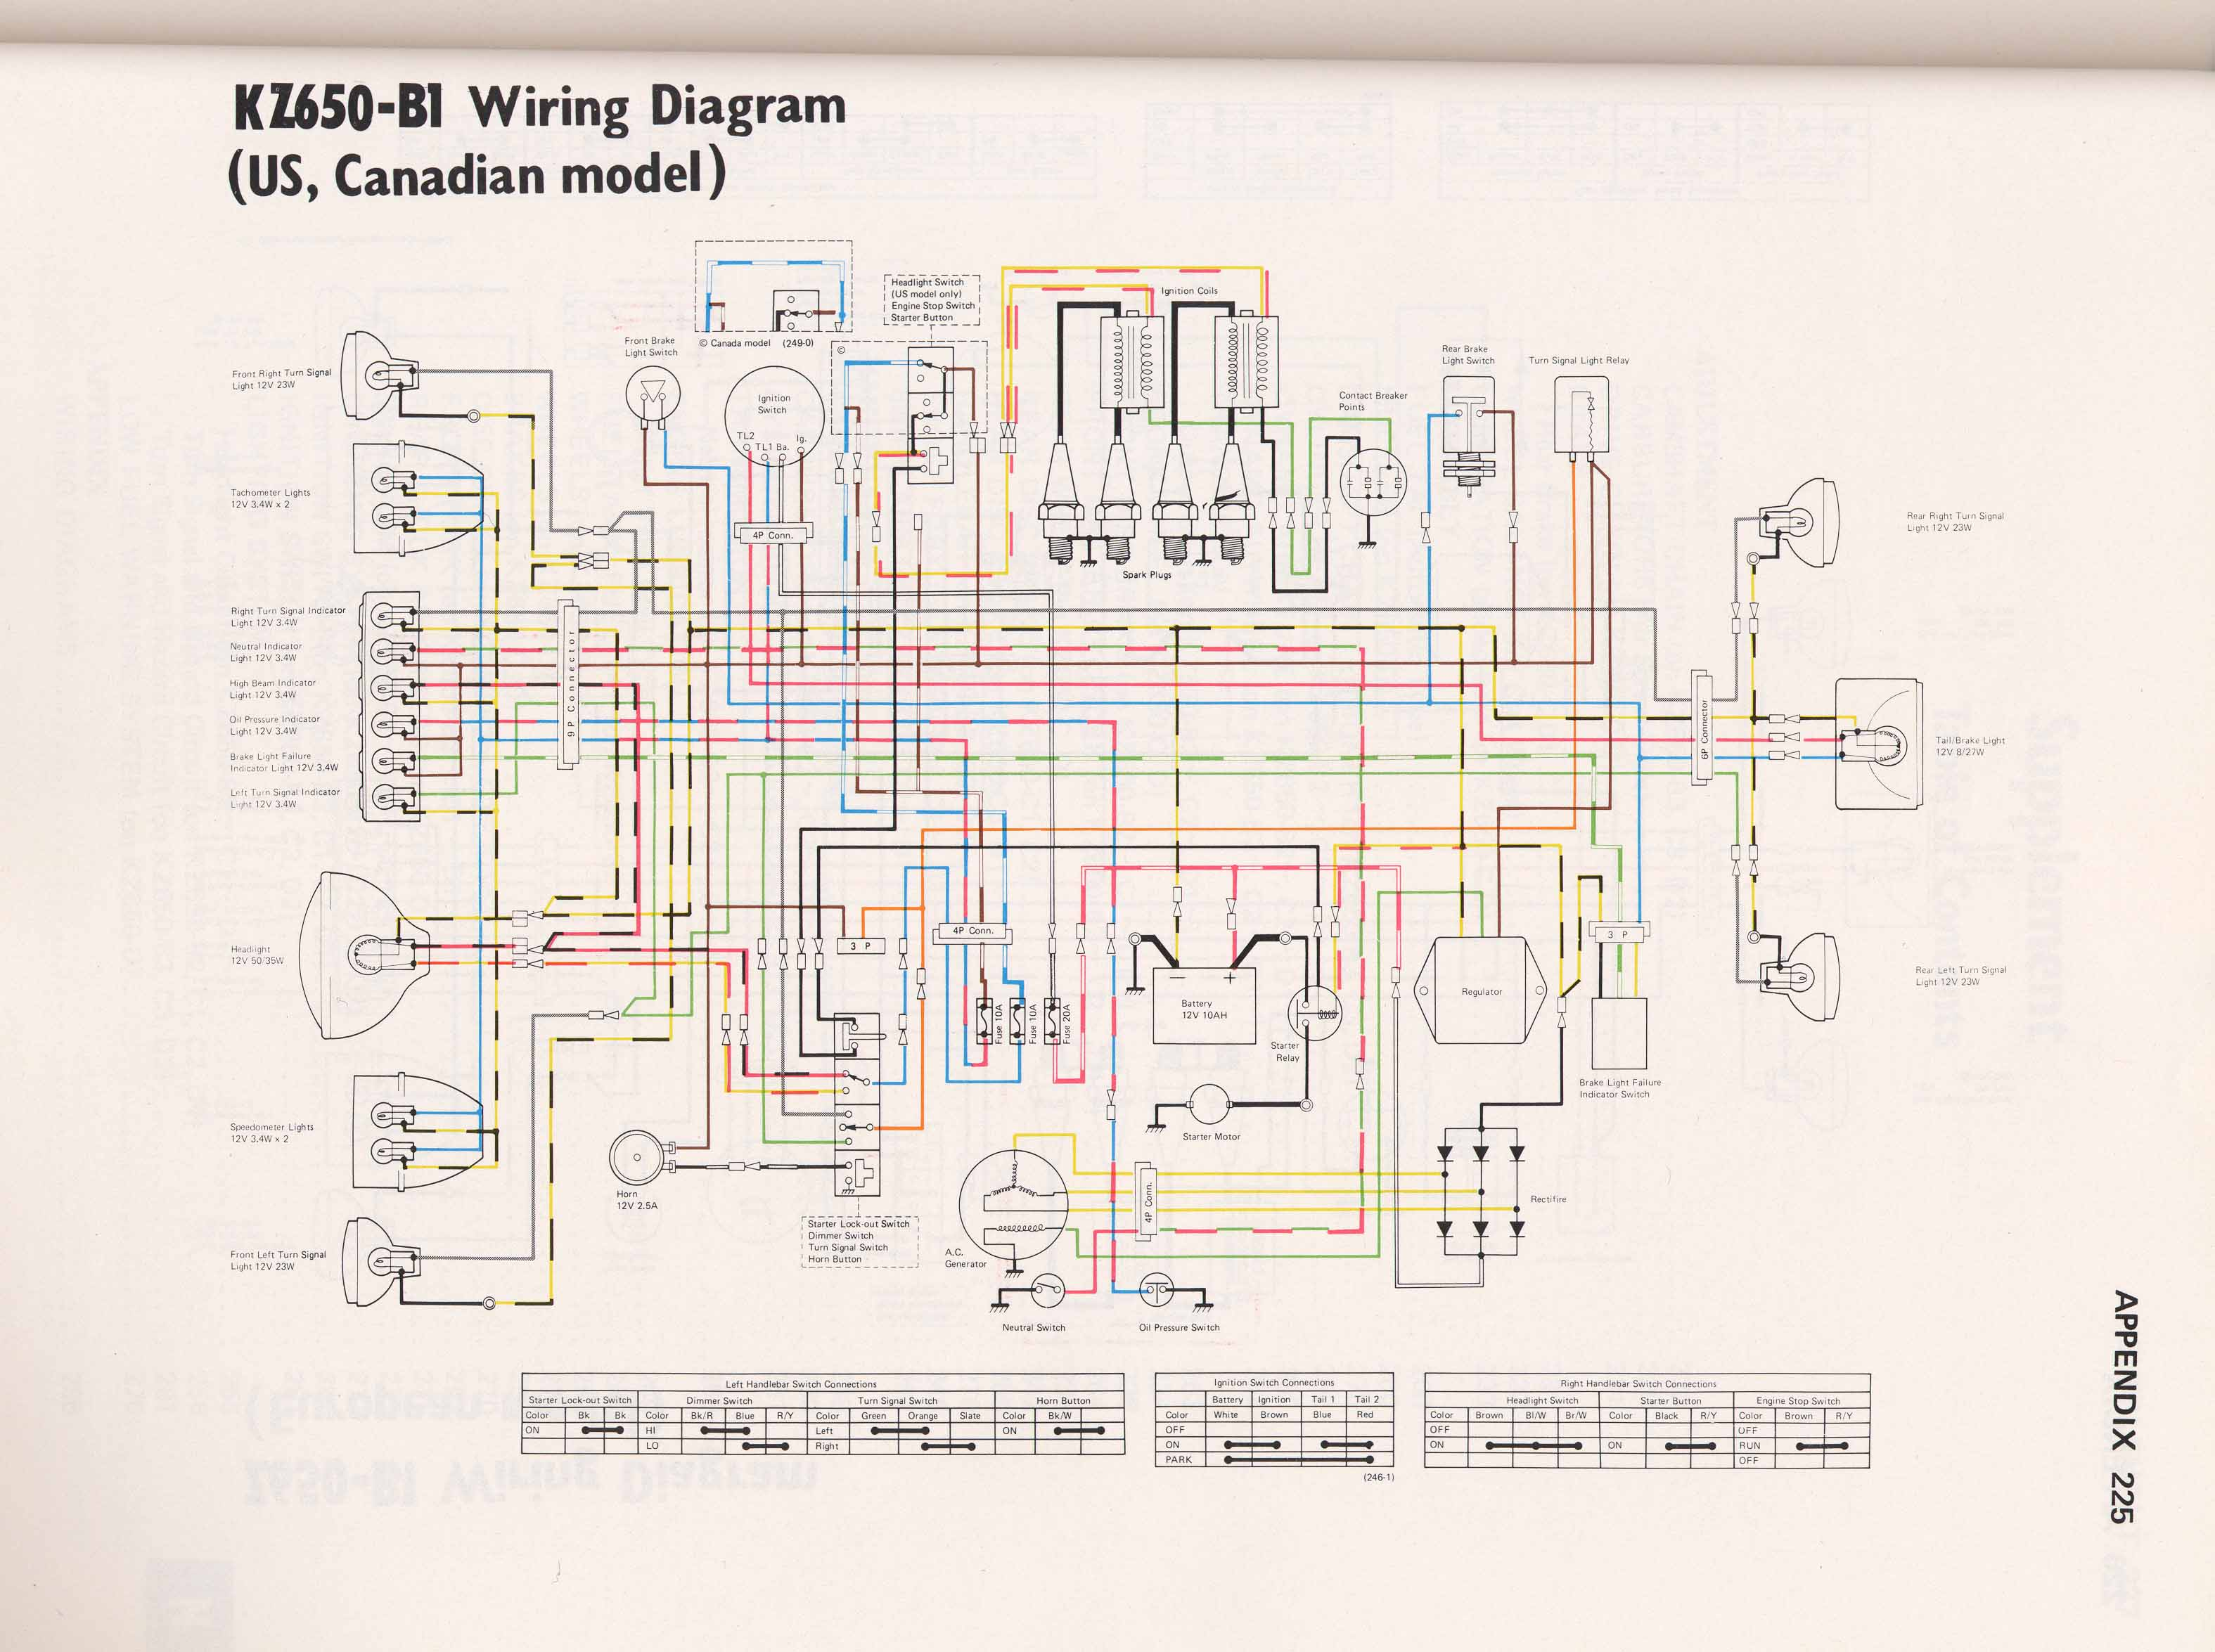 Capacitor Wiring Diagram Further Washing Machine Suzuki Rgv 120 Enthusiast Diagrams Kz650 Info Rh Rg Sport 110